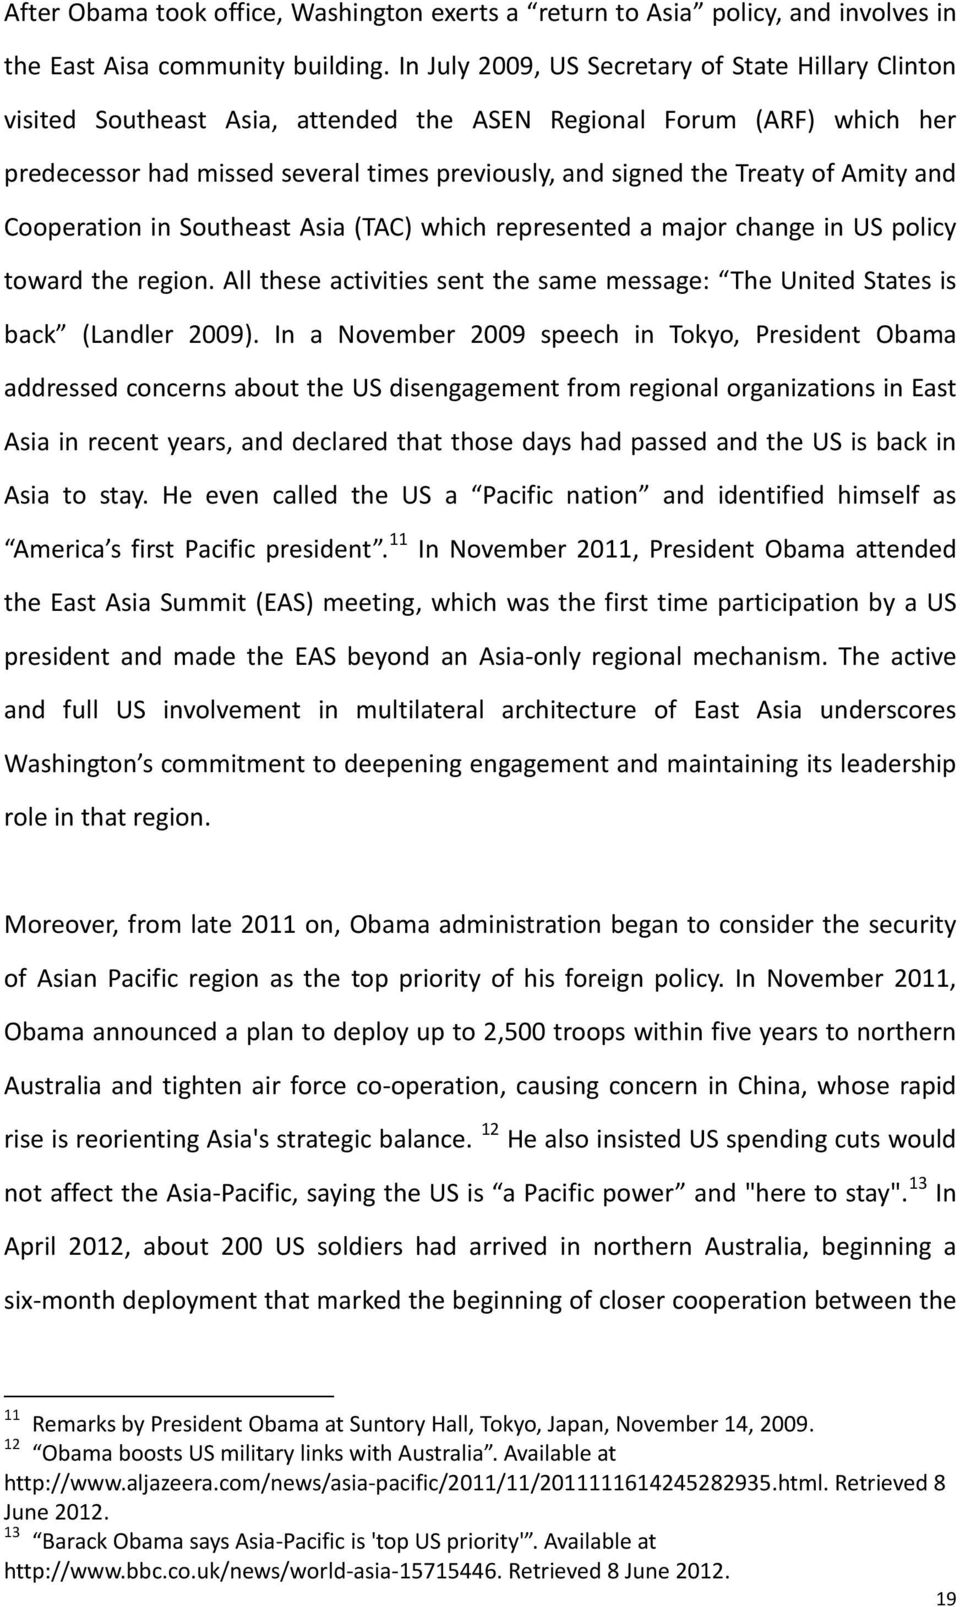 Amity and Cooeration in Southeast Asia (TAC) which reresented a major change in US olicy toward the region. All these activities sent the same message: The United States is back (Landler 2009).